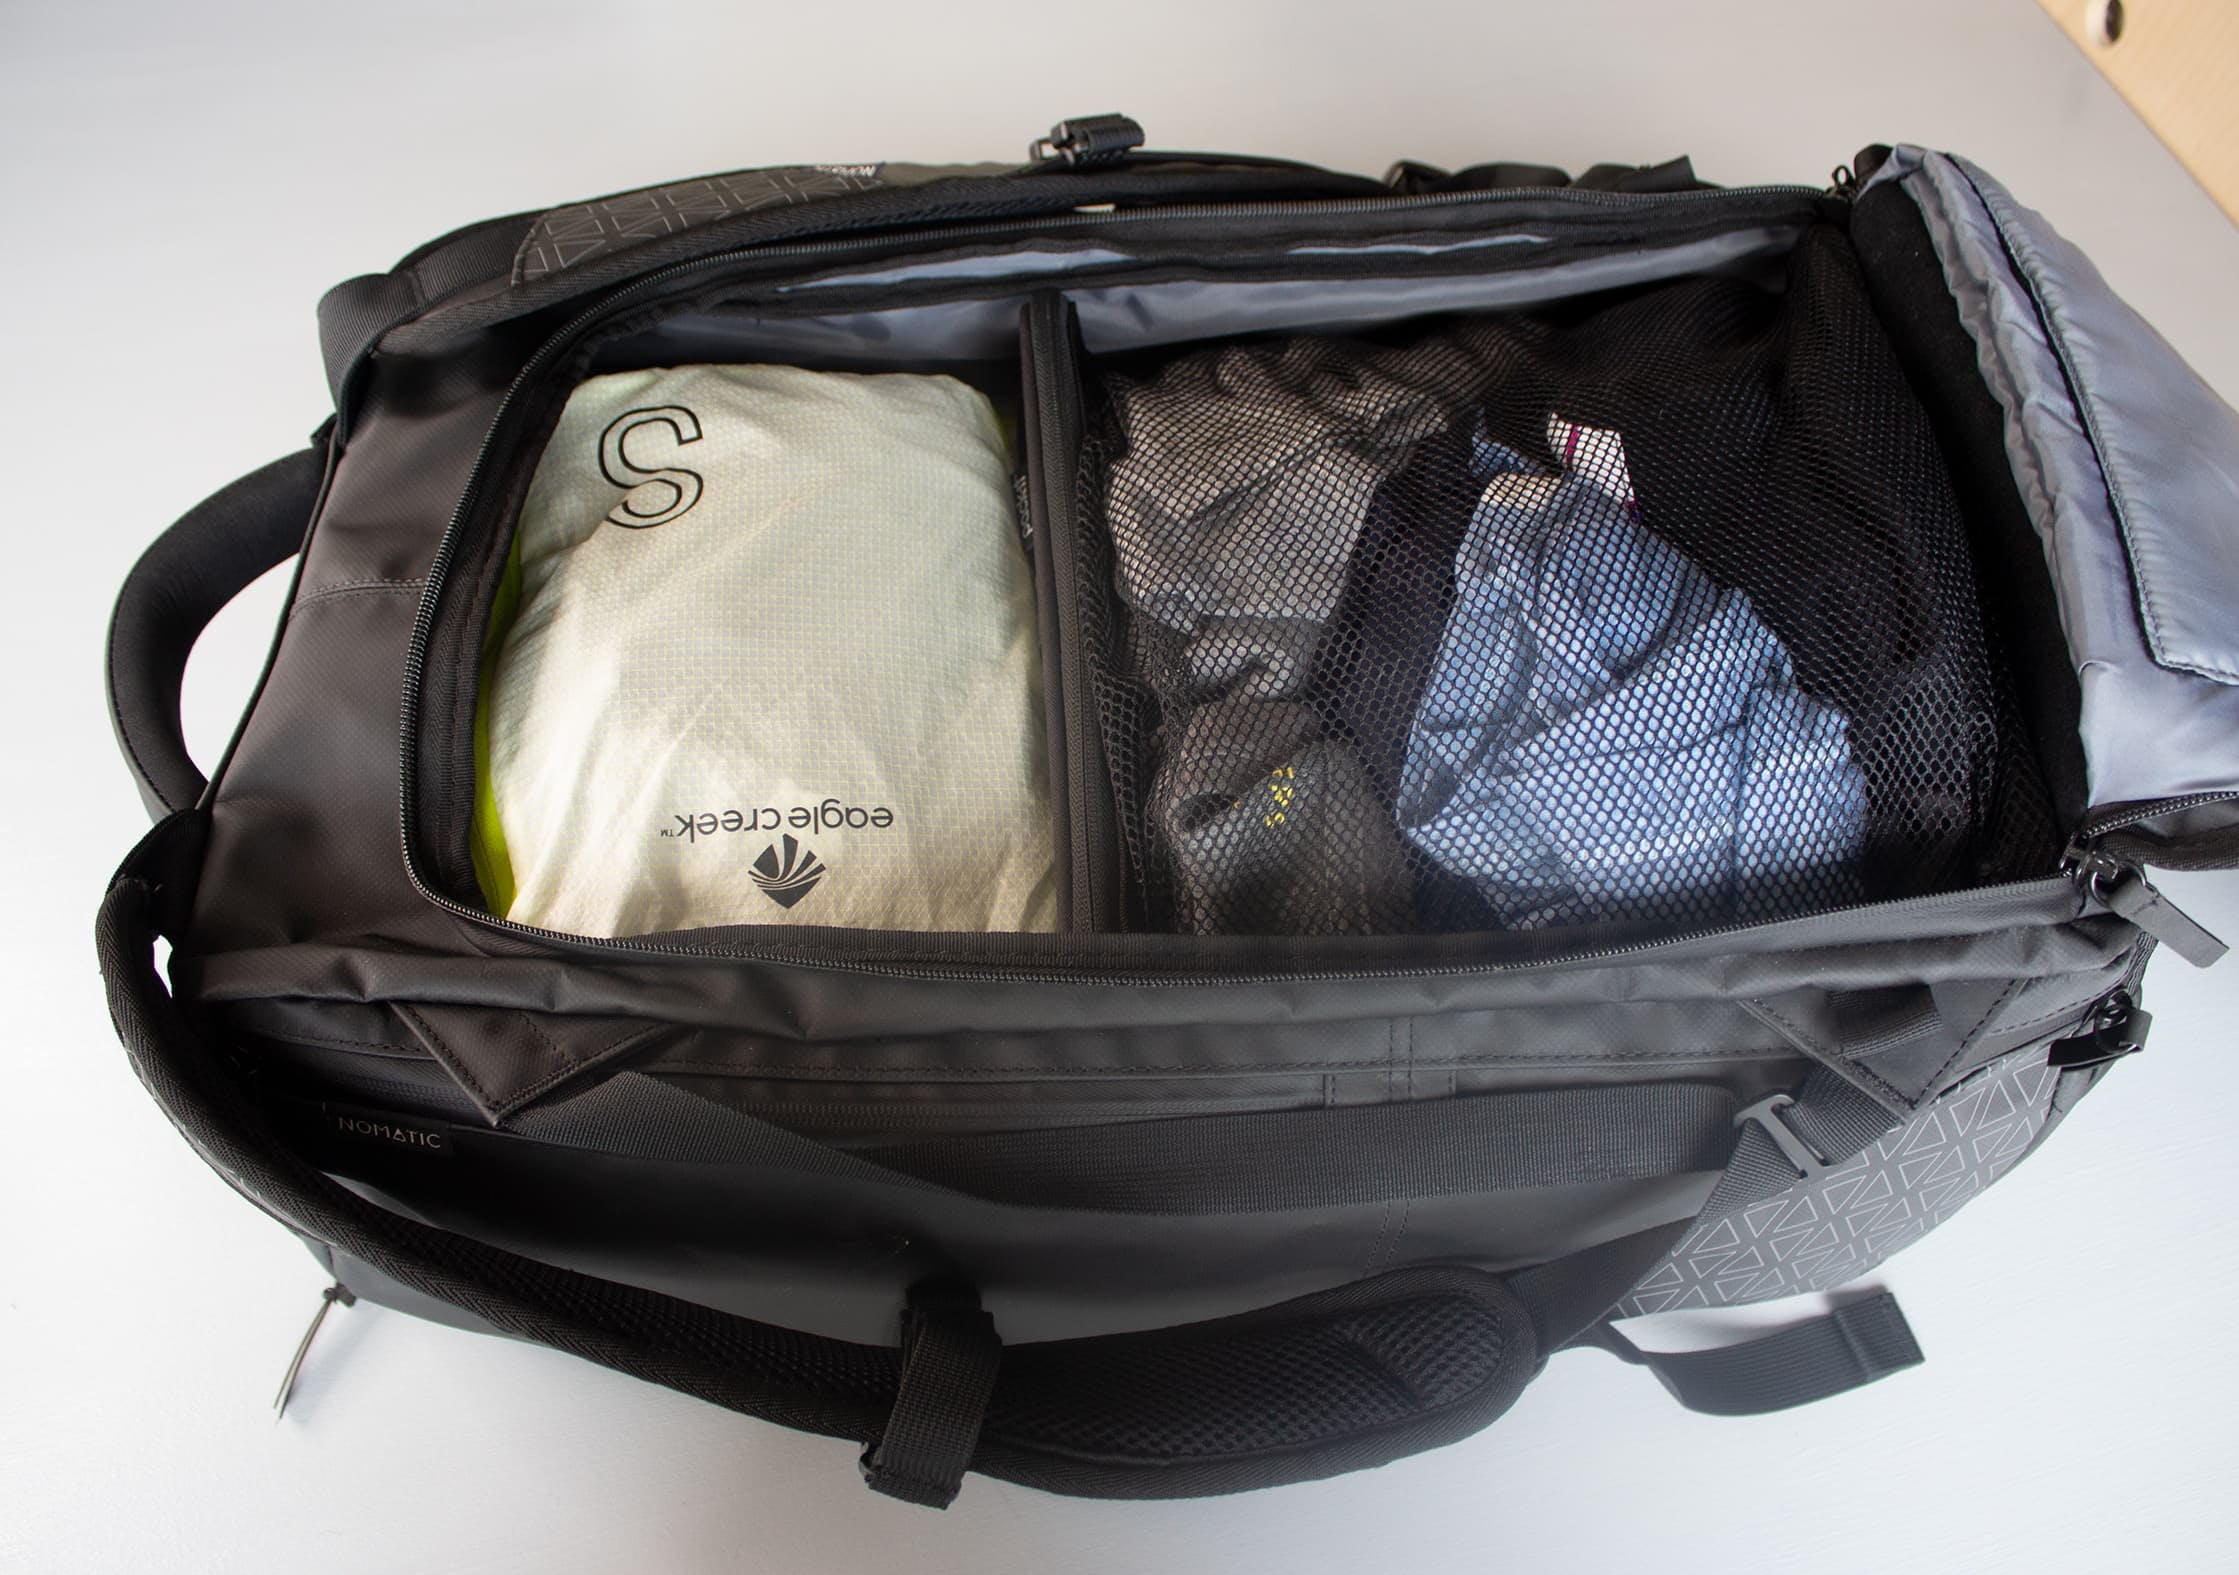 Nomatic Travel Bag Backpack Review Pack Hacker